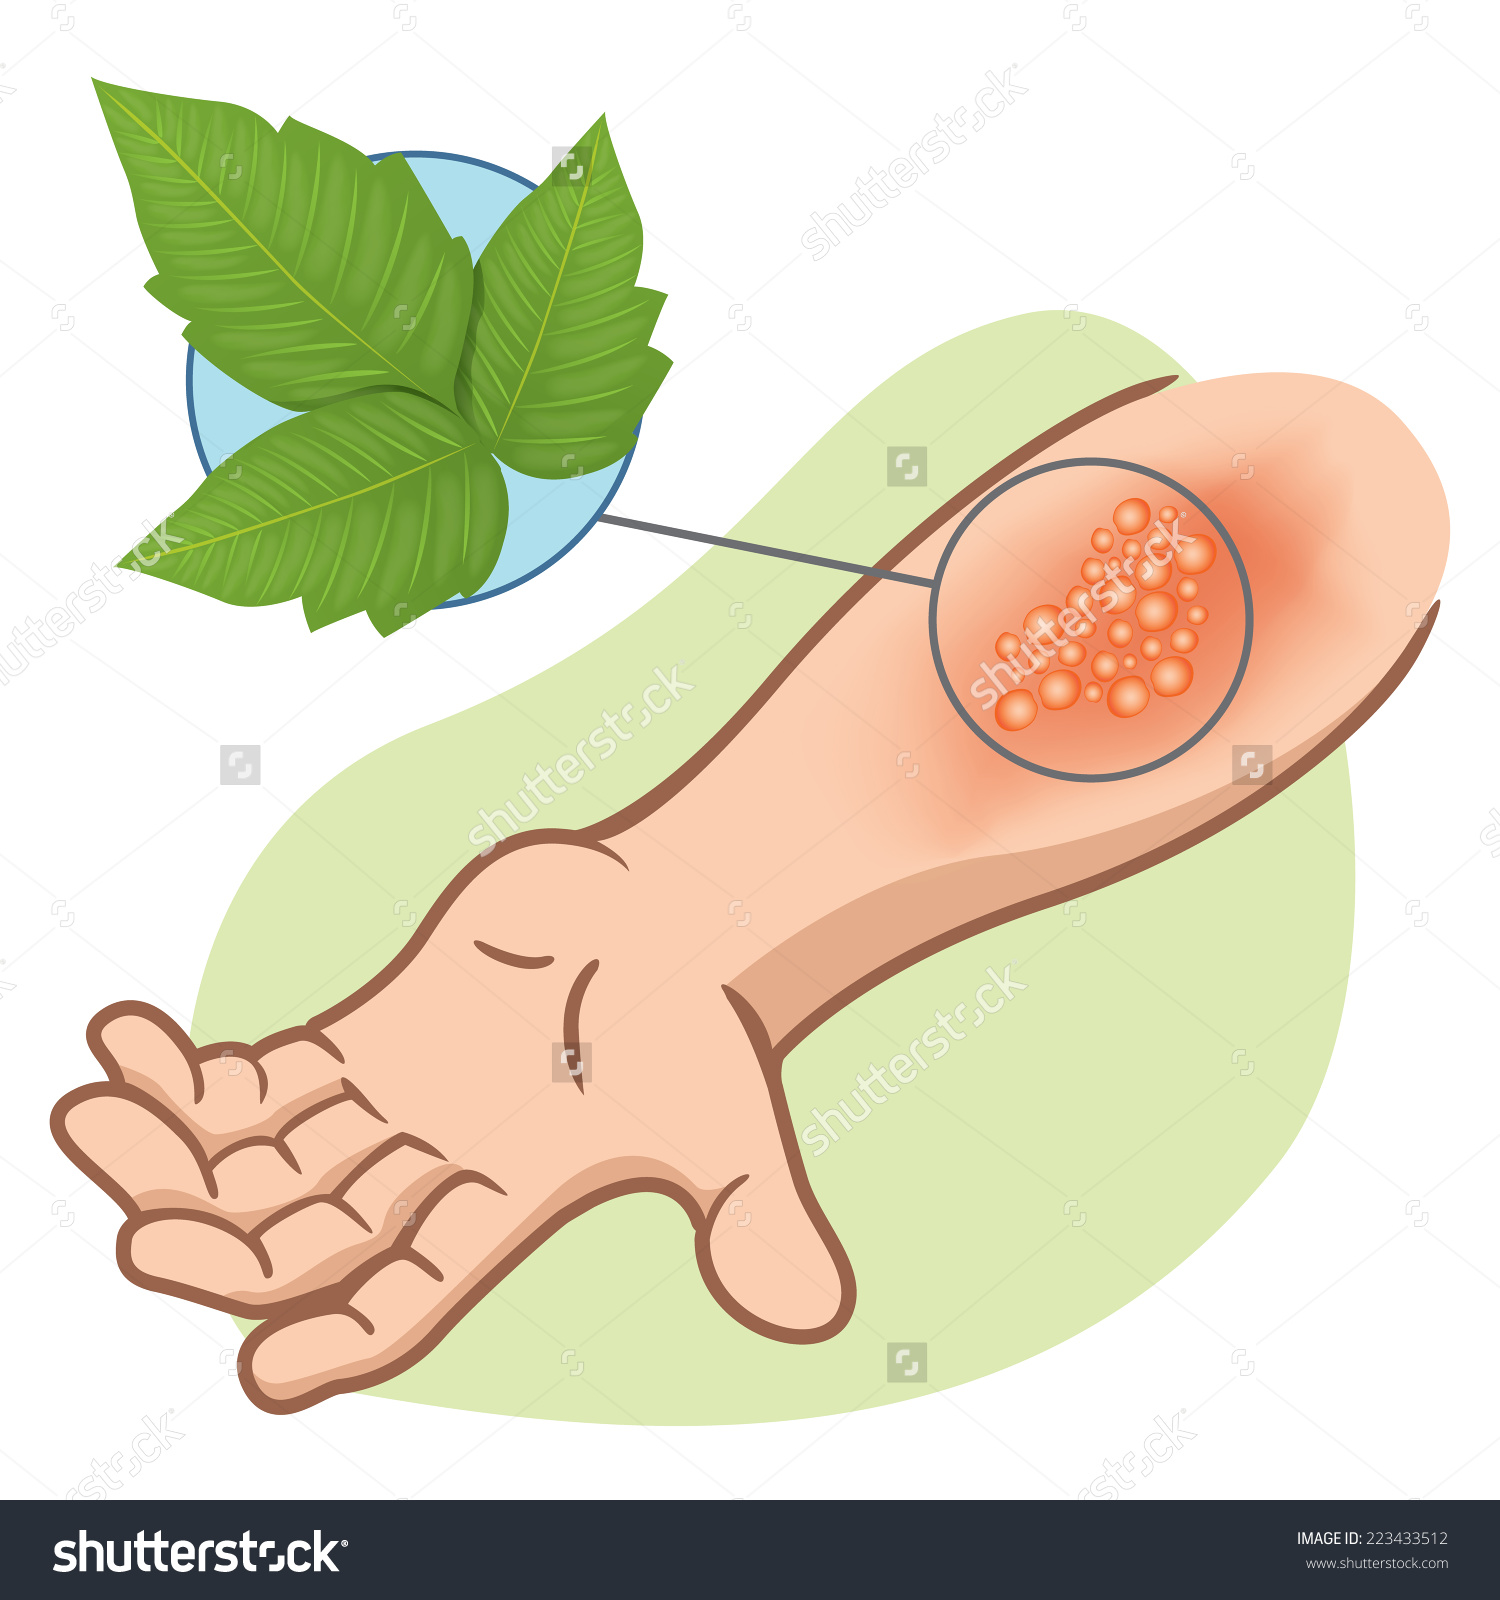 Allergy plant clipart #4